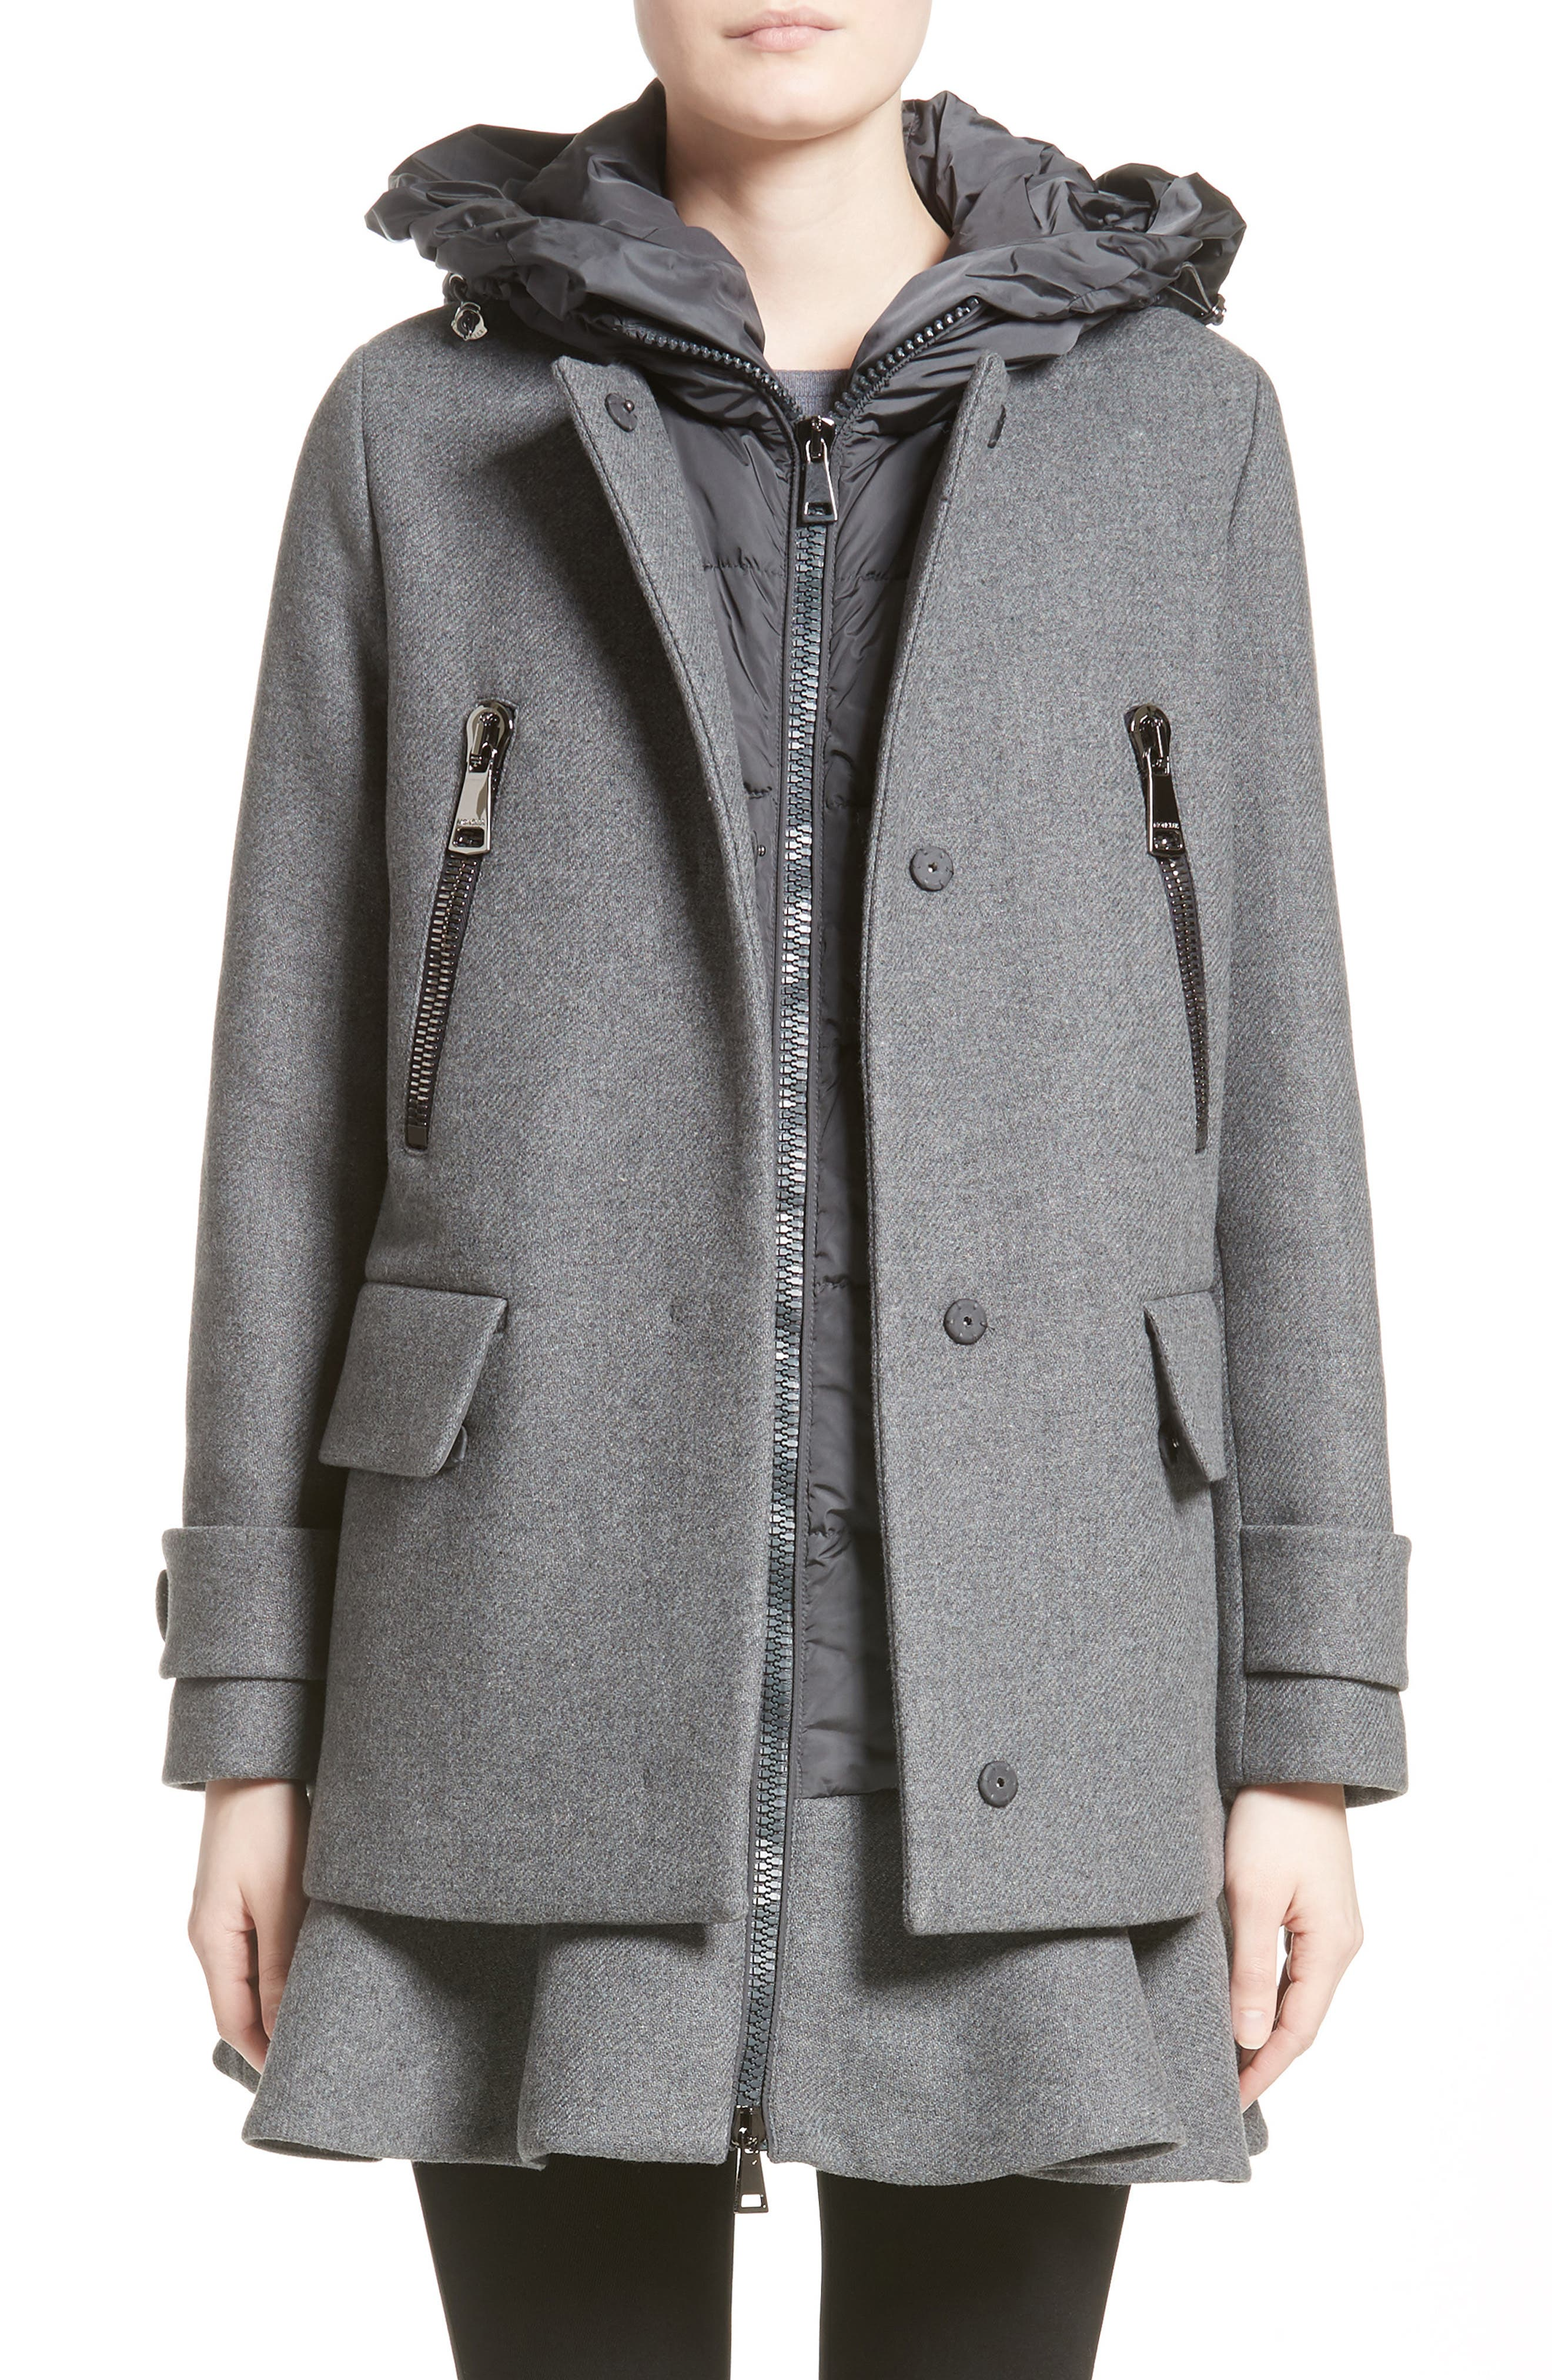 MONCLER Phemia Wool Blend Jacket with Removable Hooded Puffer Vest